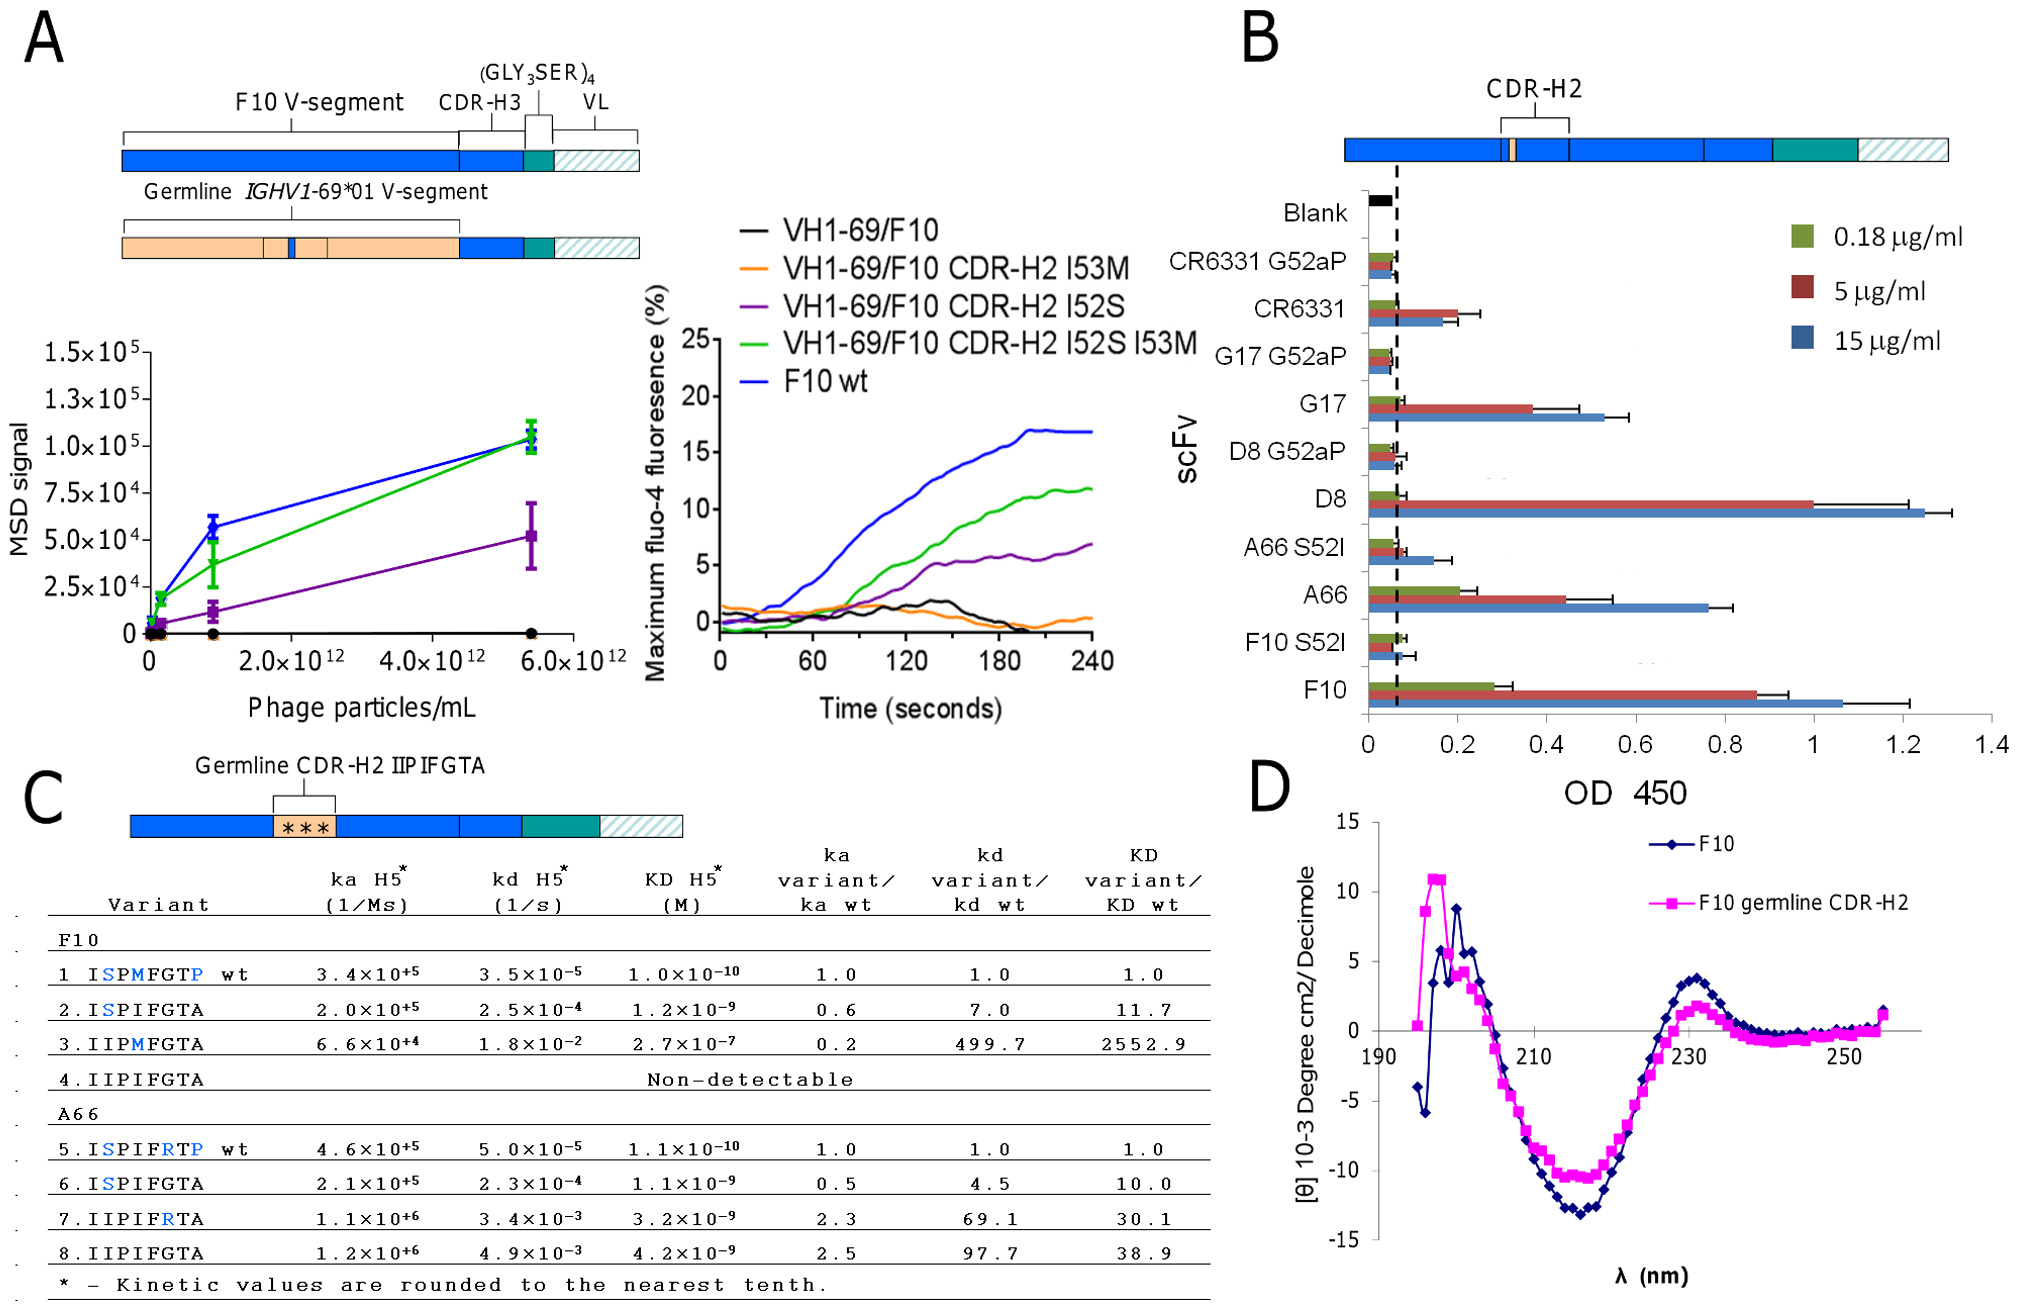 Validating the structural role of Ser52 in HV1-69-sBnAbs.